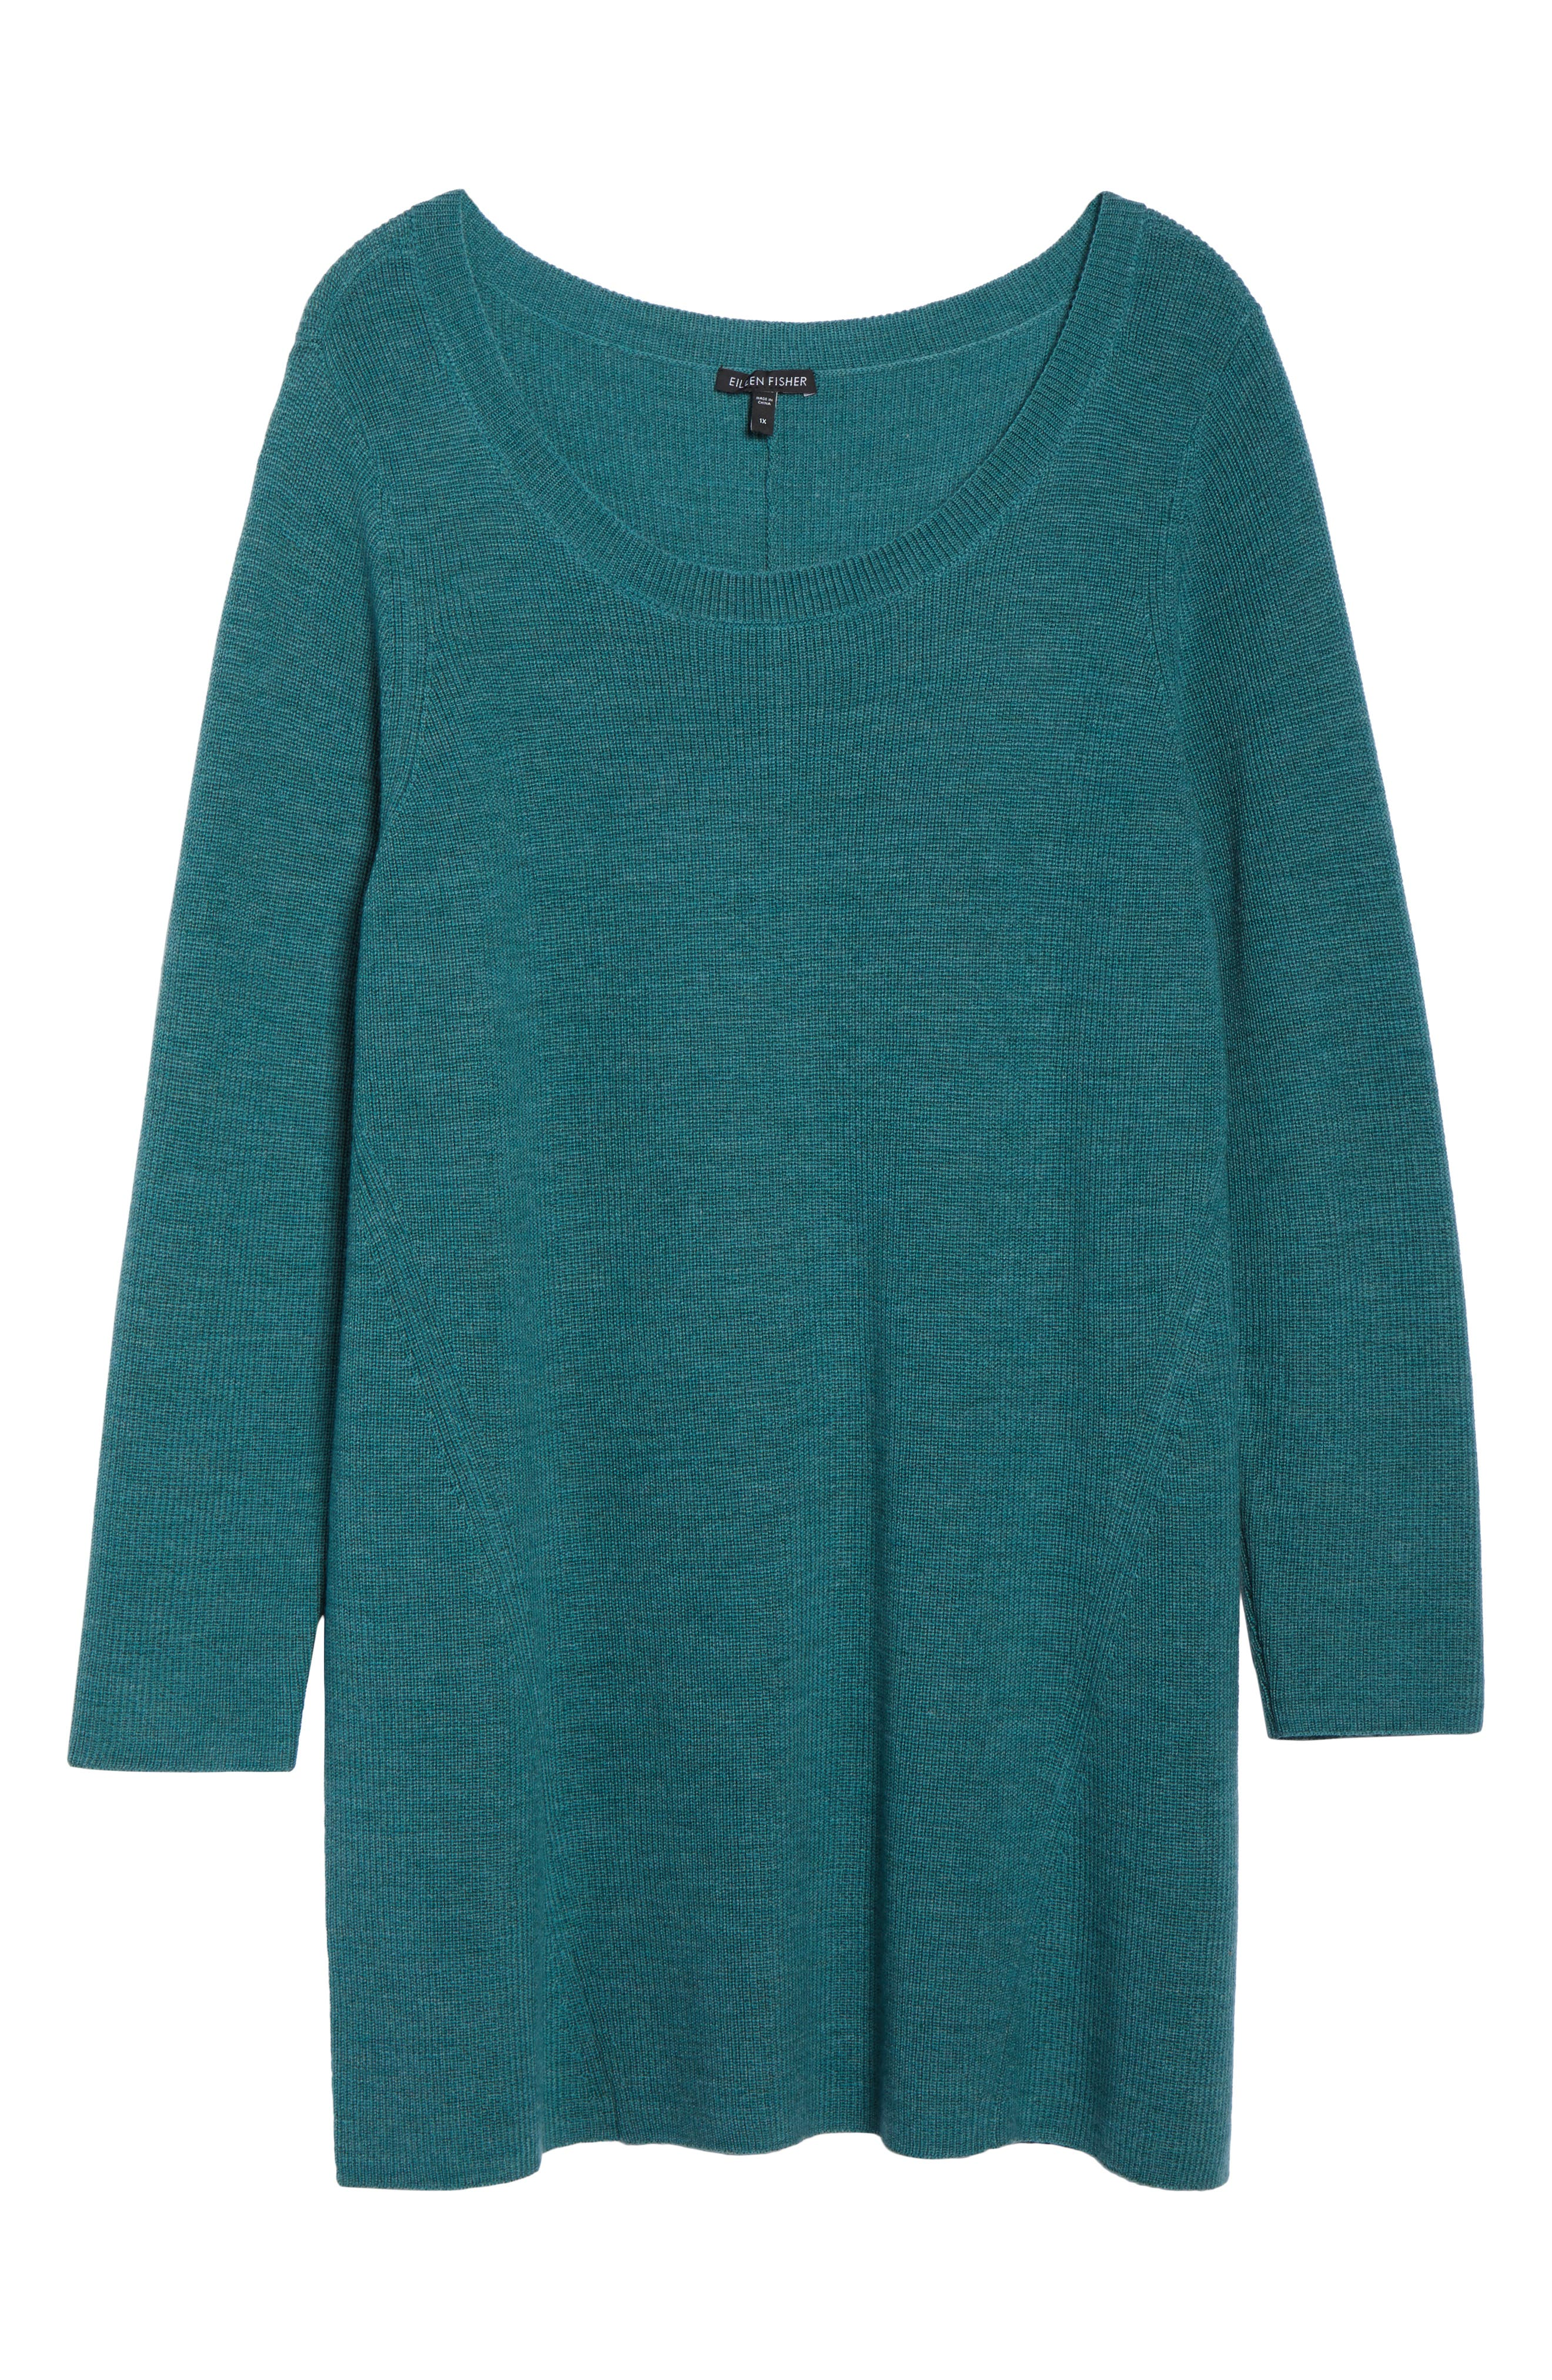 EILEEN FISHER,                             Merino Wool Tunic Sweater,                             Alternate thumbnail 6, color,                             DRAGONFLY